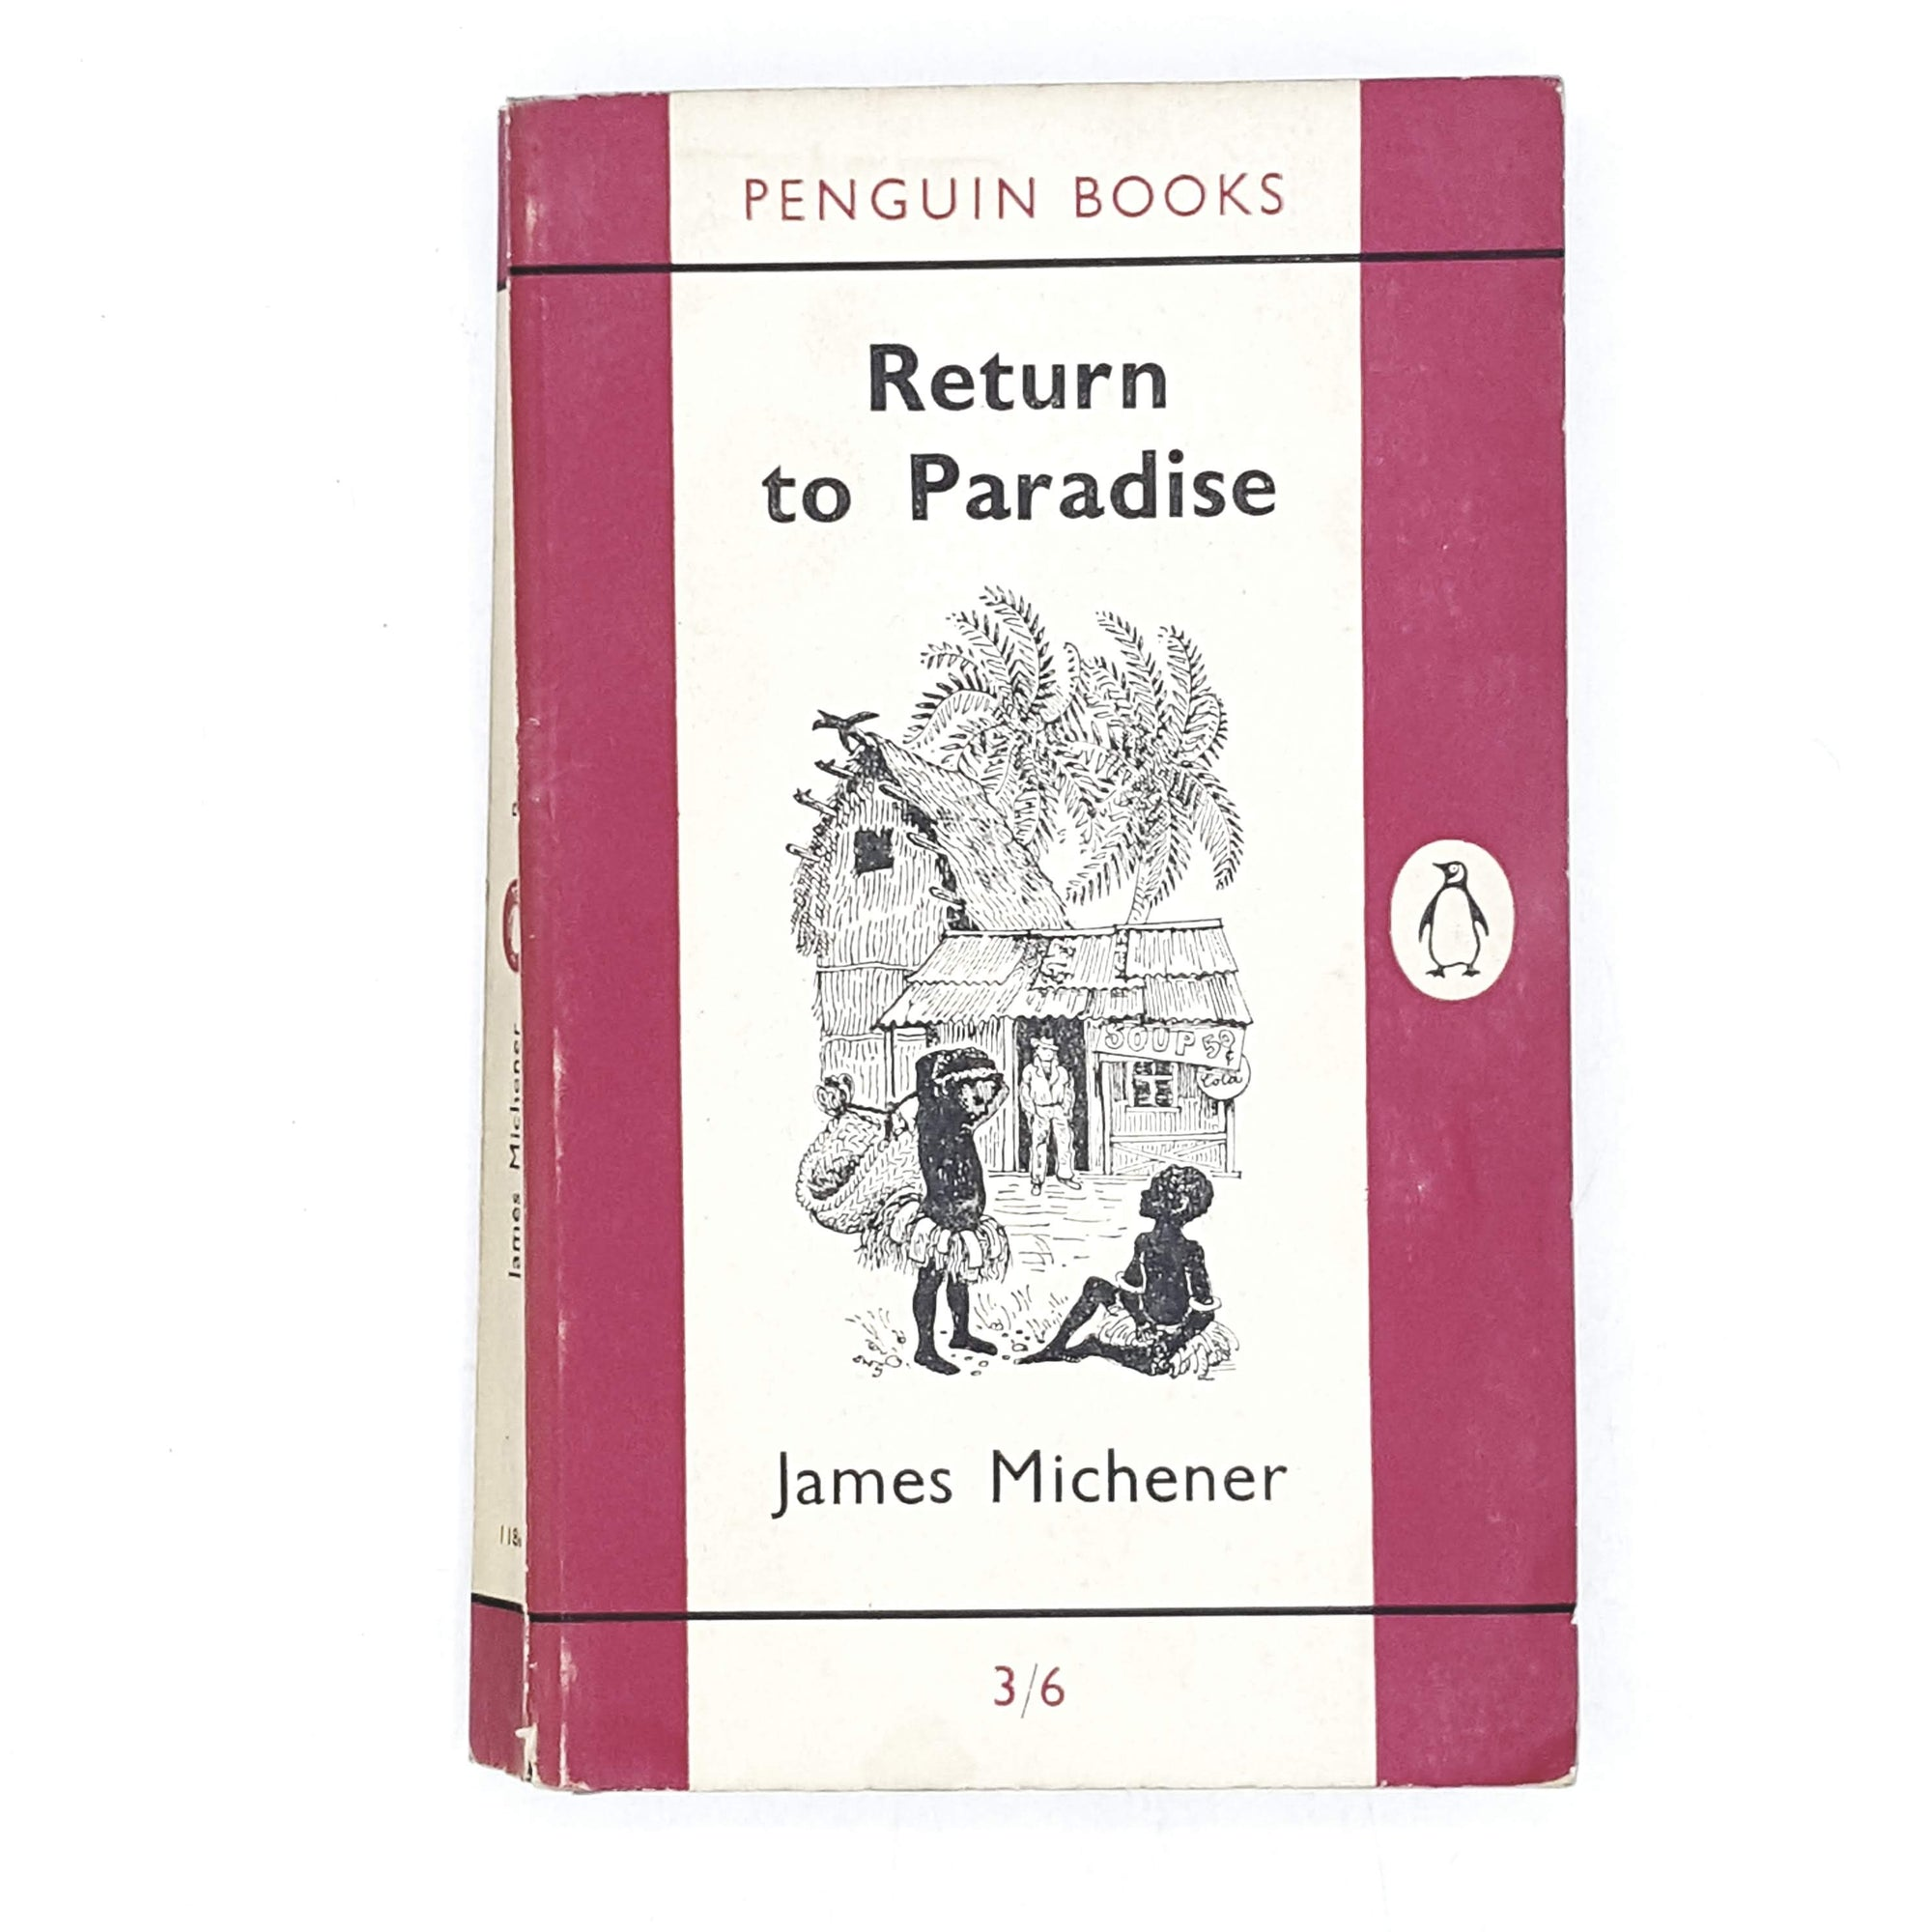 vintage-penguin-return-to-paradise-pink-travel-country-house-library